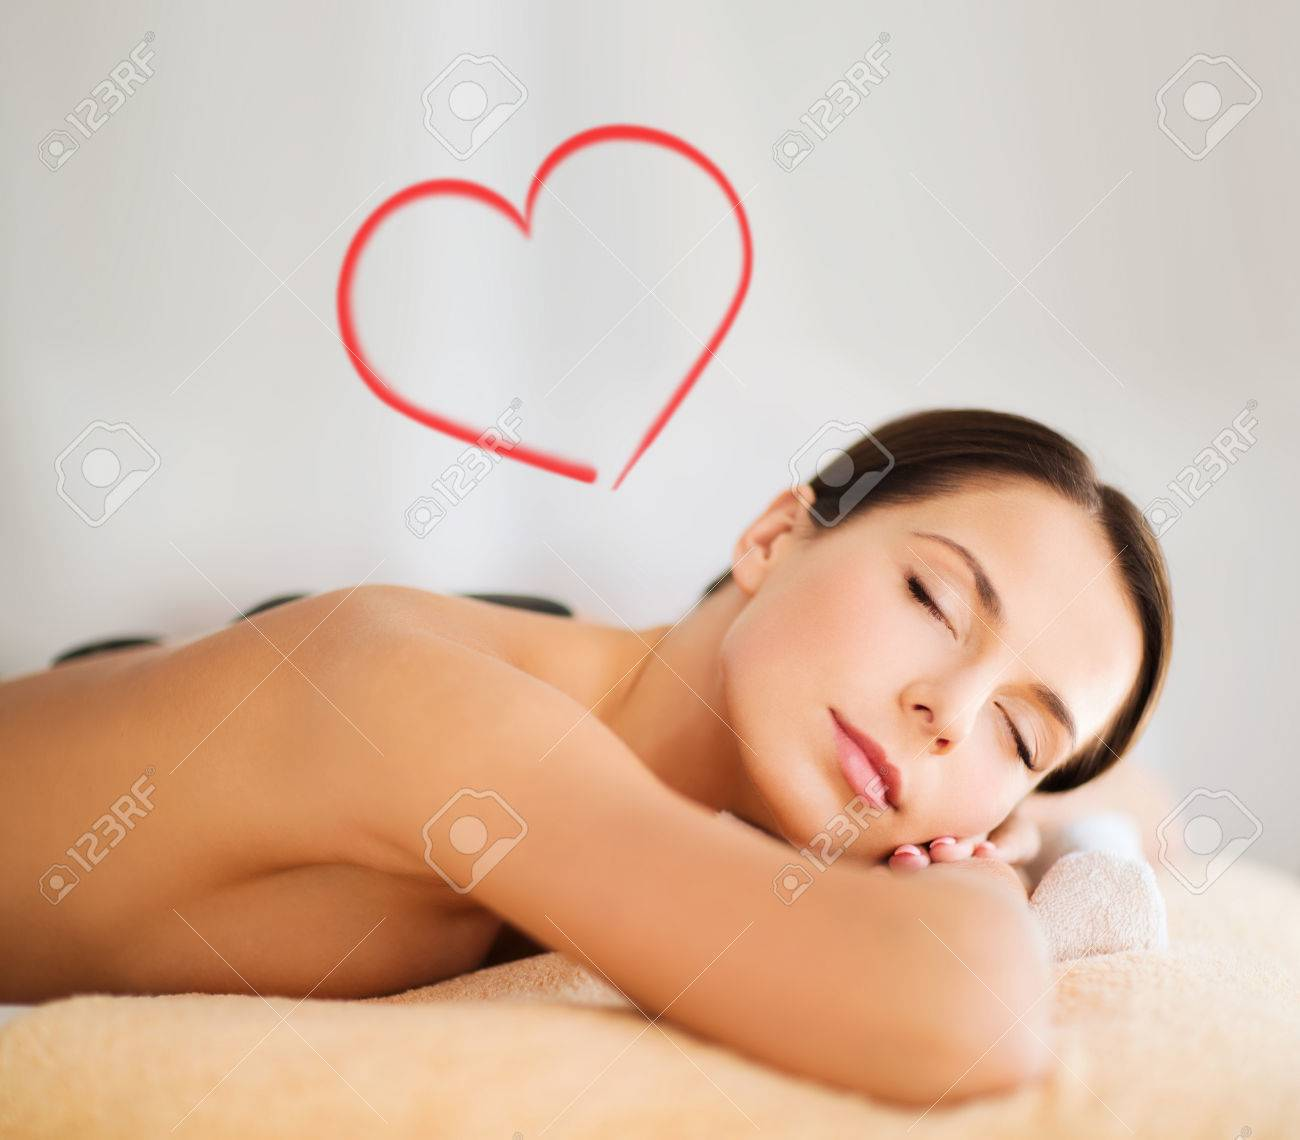 health and beauty, resort and relaxation concept - beautiful woman with closed eyes in spa salon with hot stones Stock Photo - 24371223